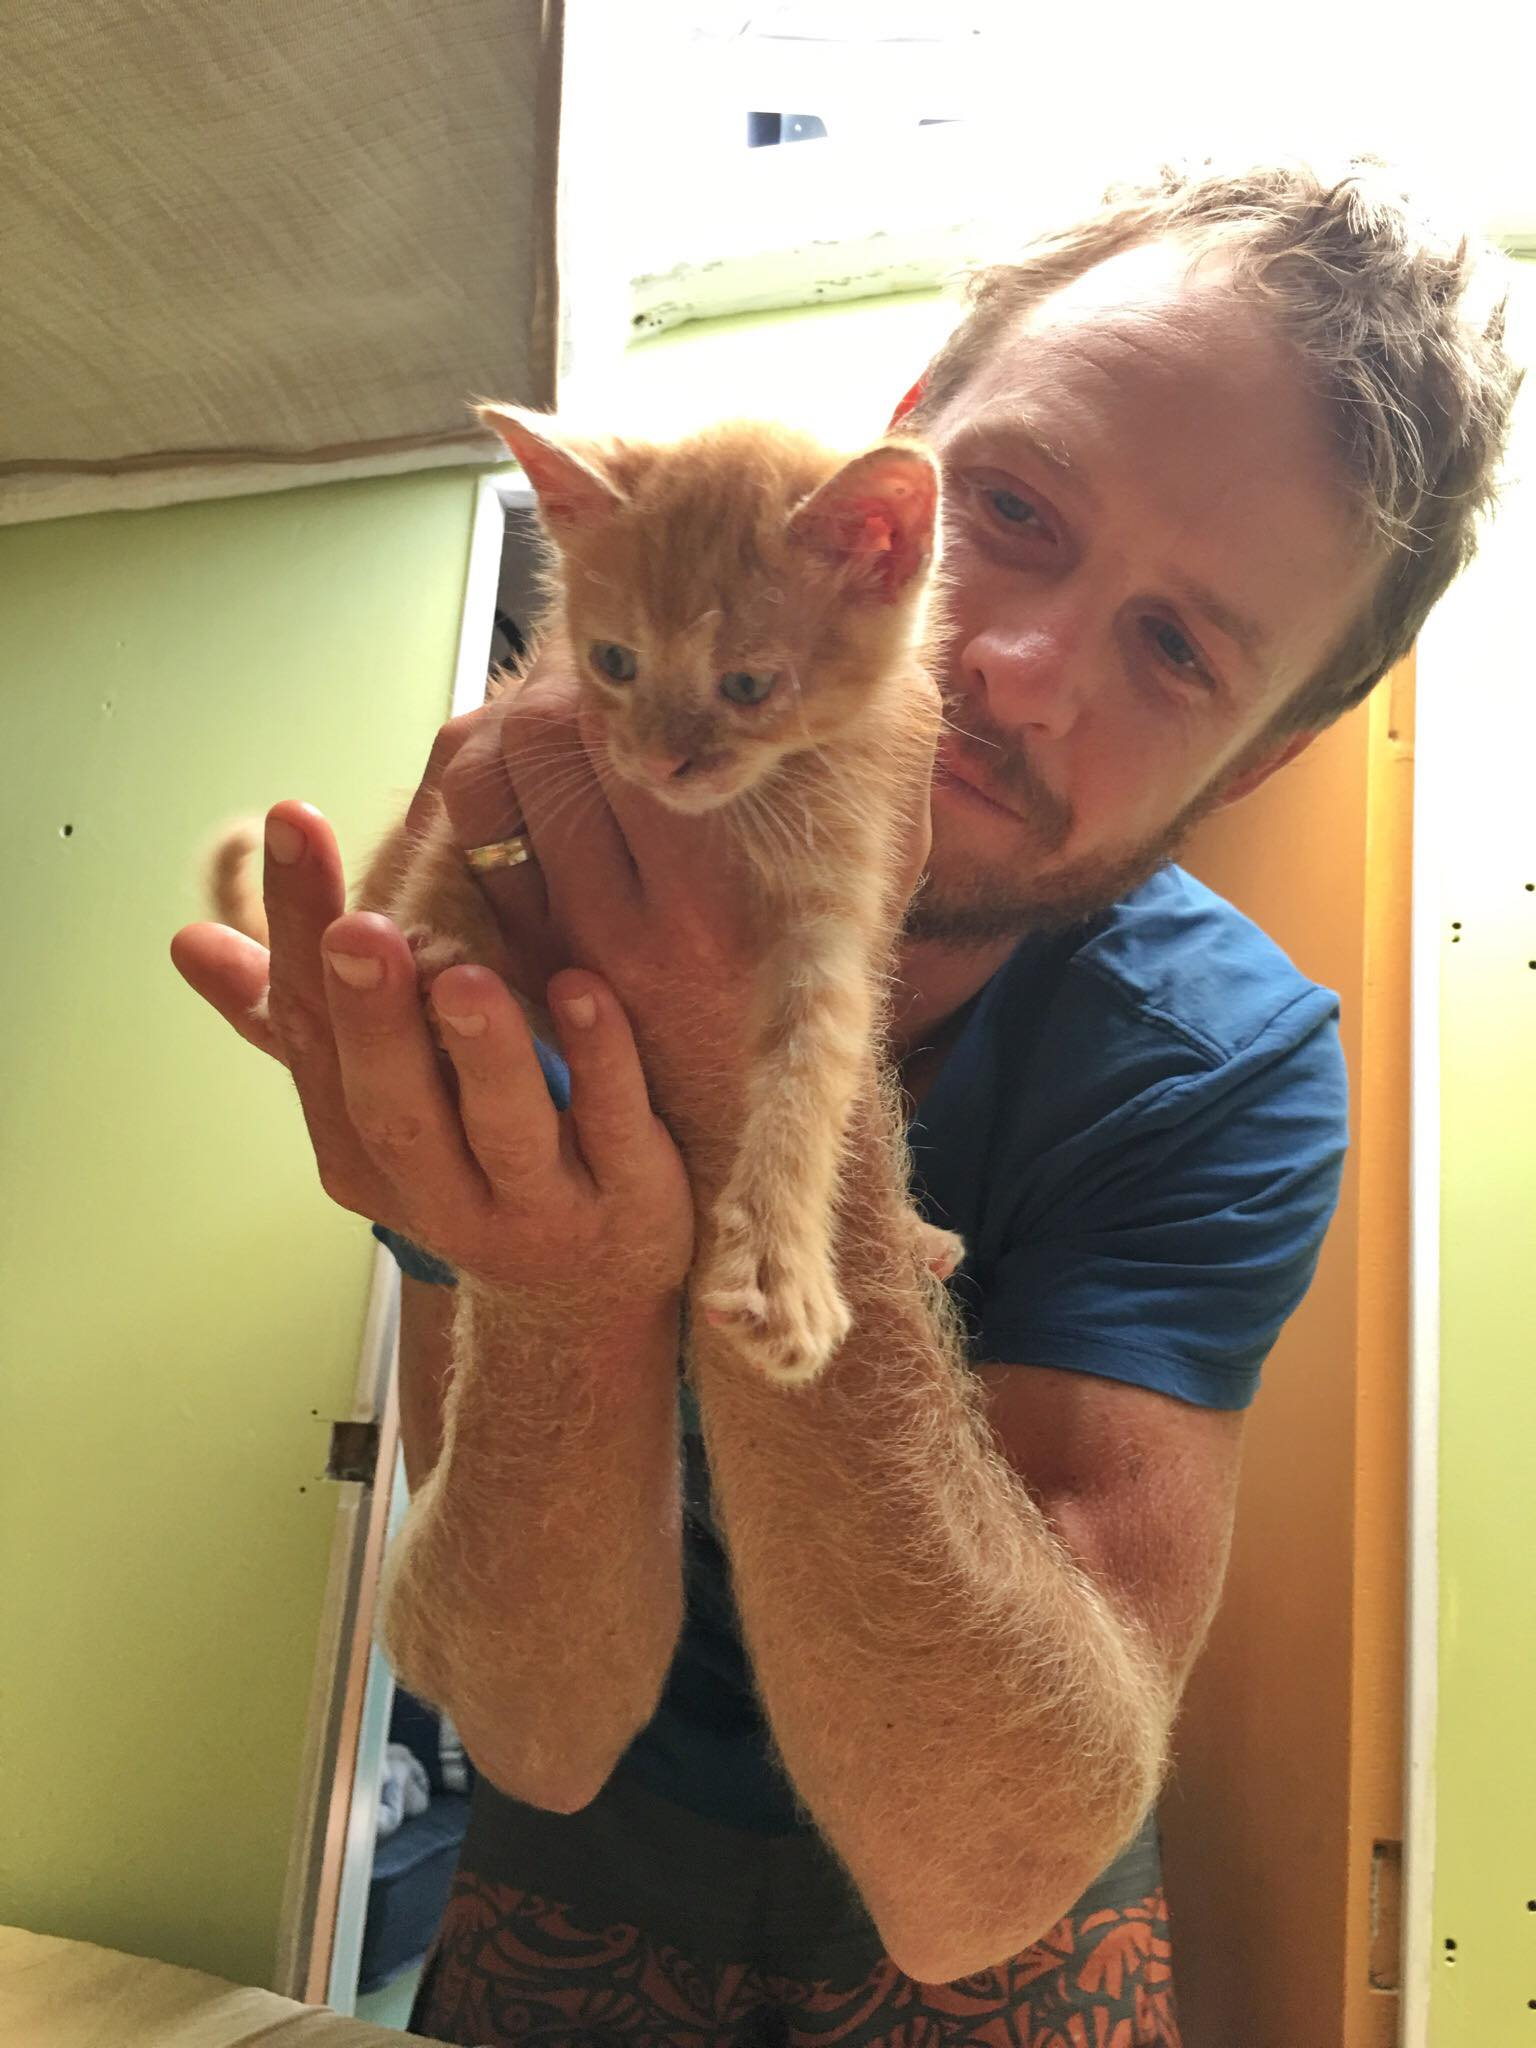 Liveaboard Life Day 138 - 143: Welcoming a new member of our small family!